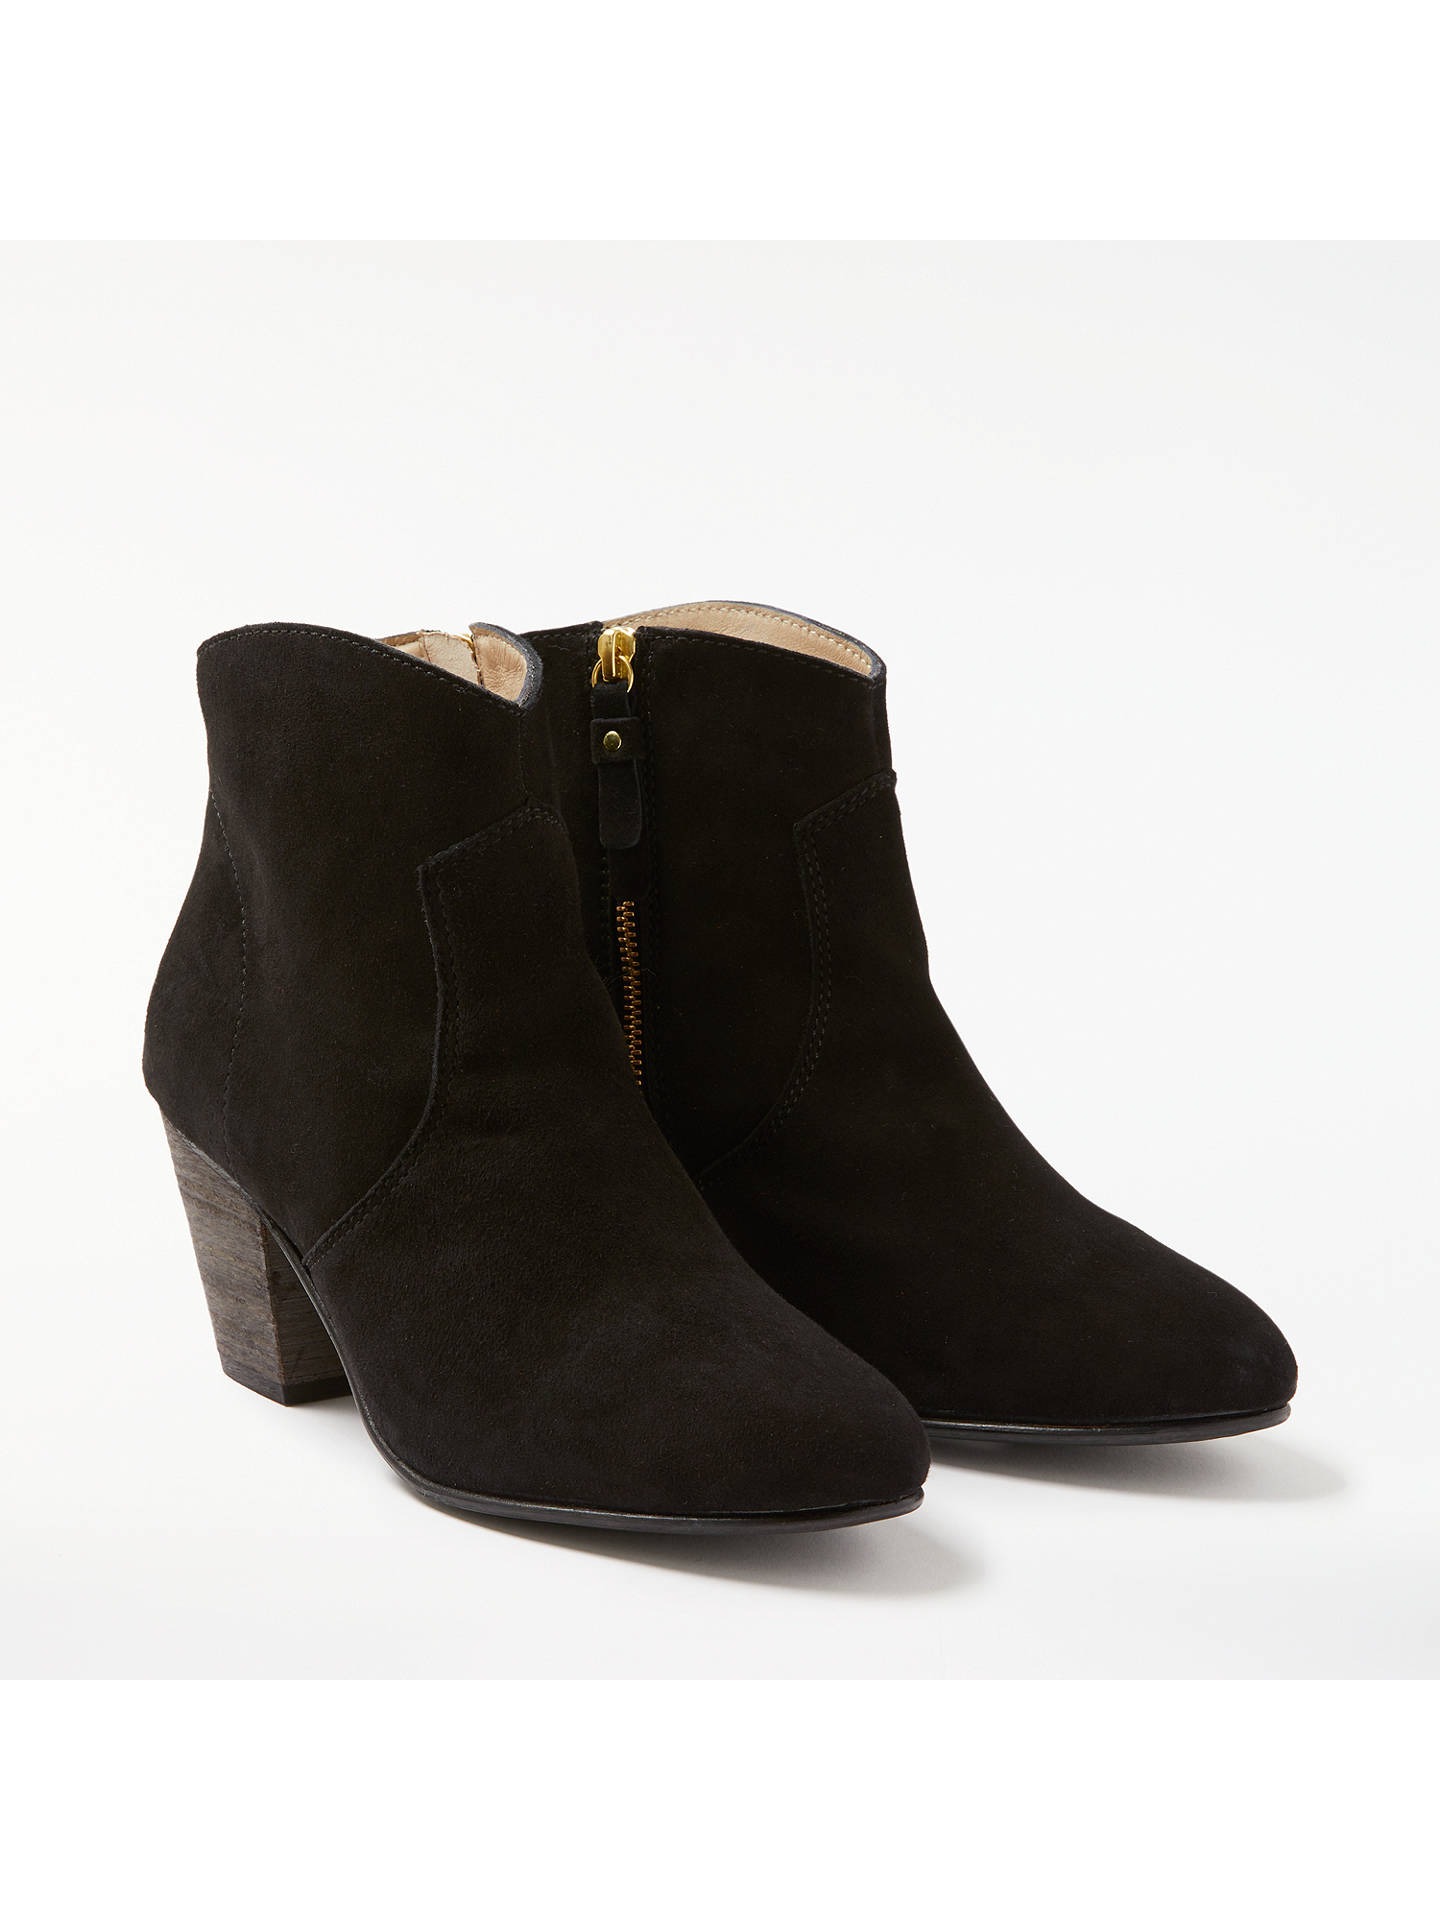 Buy Boden Boho Block Heeled Ankle Boots, Black Suede, 4 Online at johnlewis.com